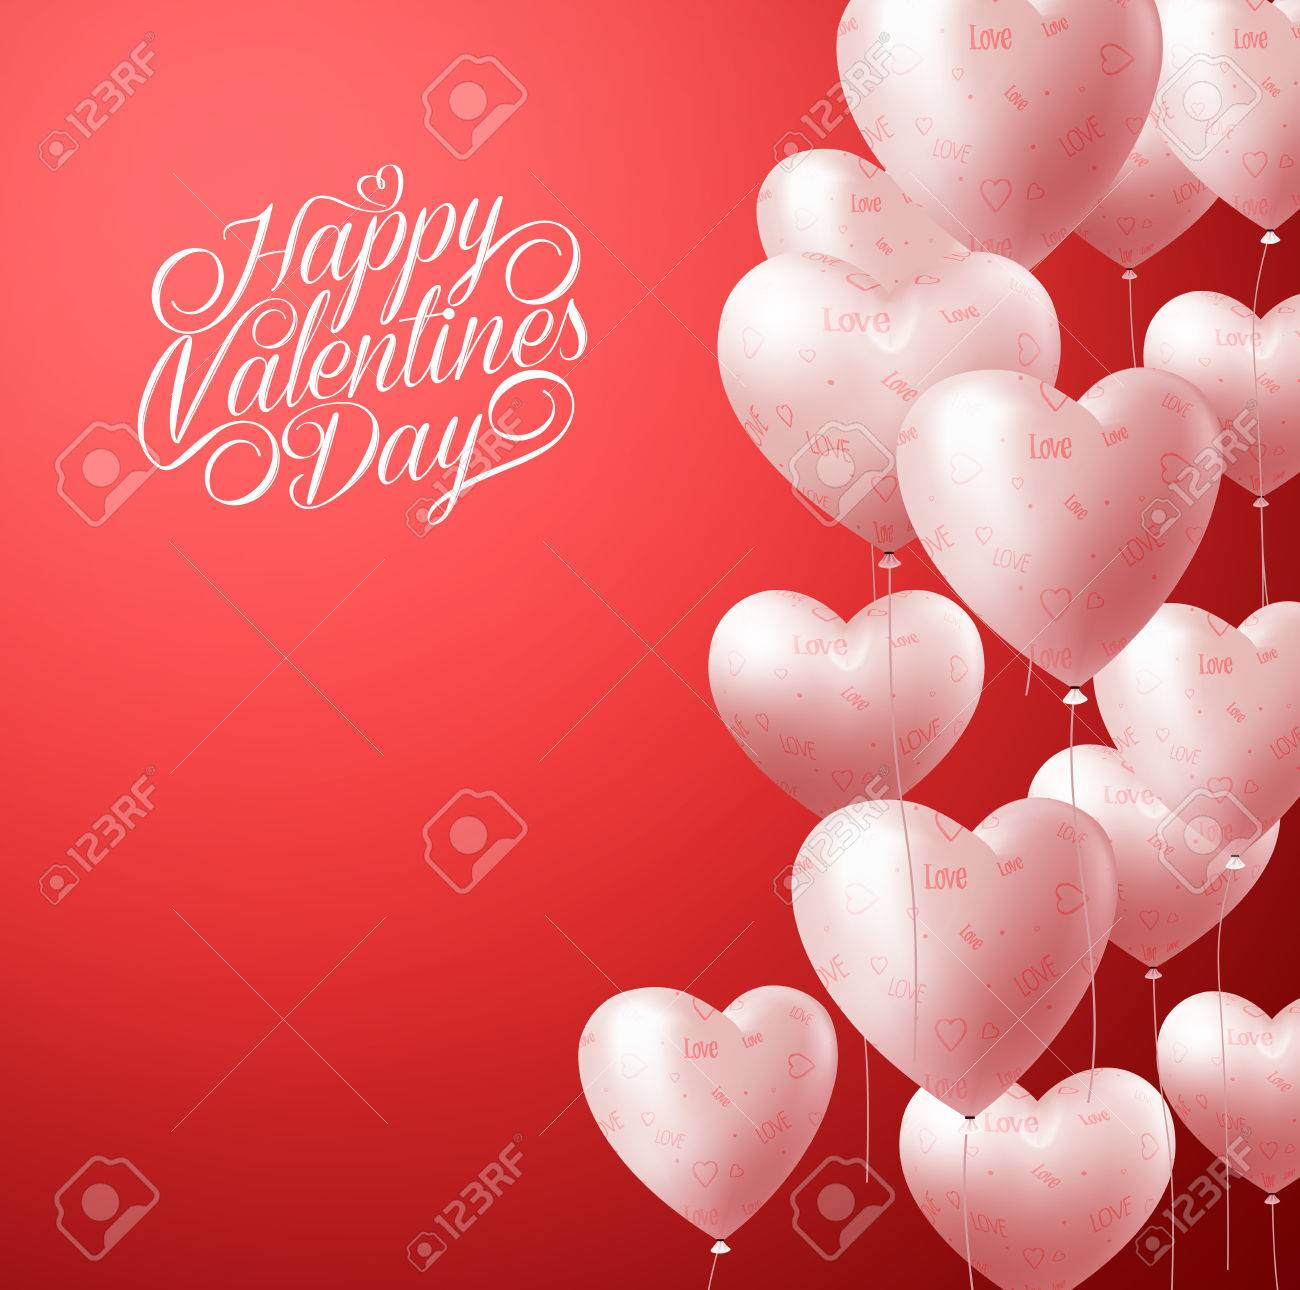 3D Realistic Heart Balloons Flying in Red Background for Valentines Background with Greetings and Space for Message. Vector Illustration - 50818490